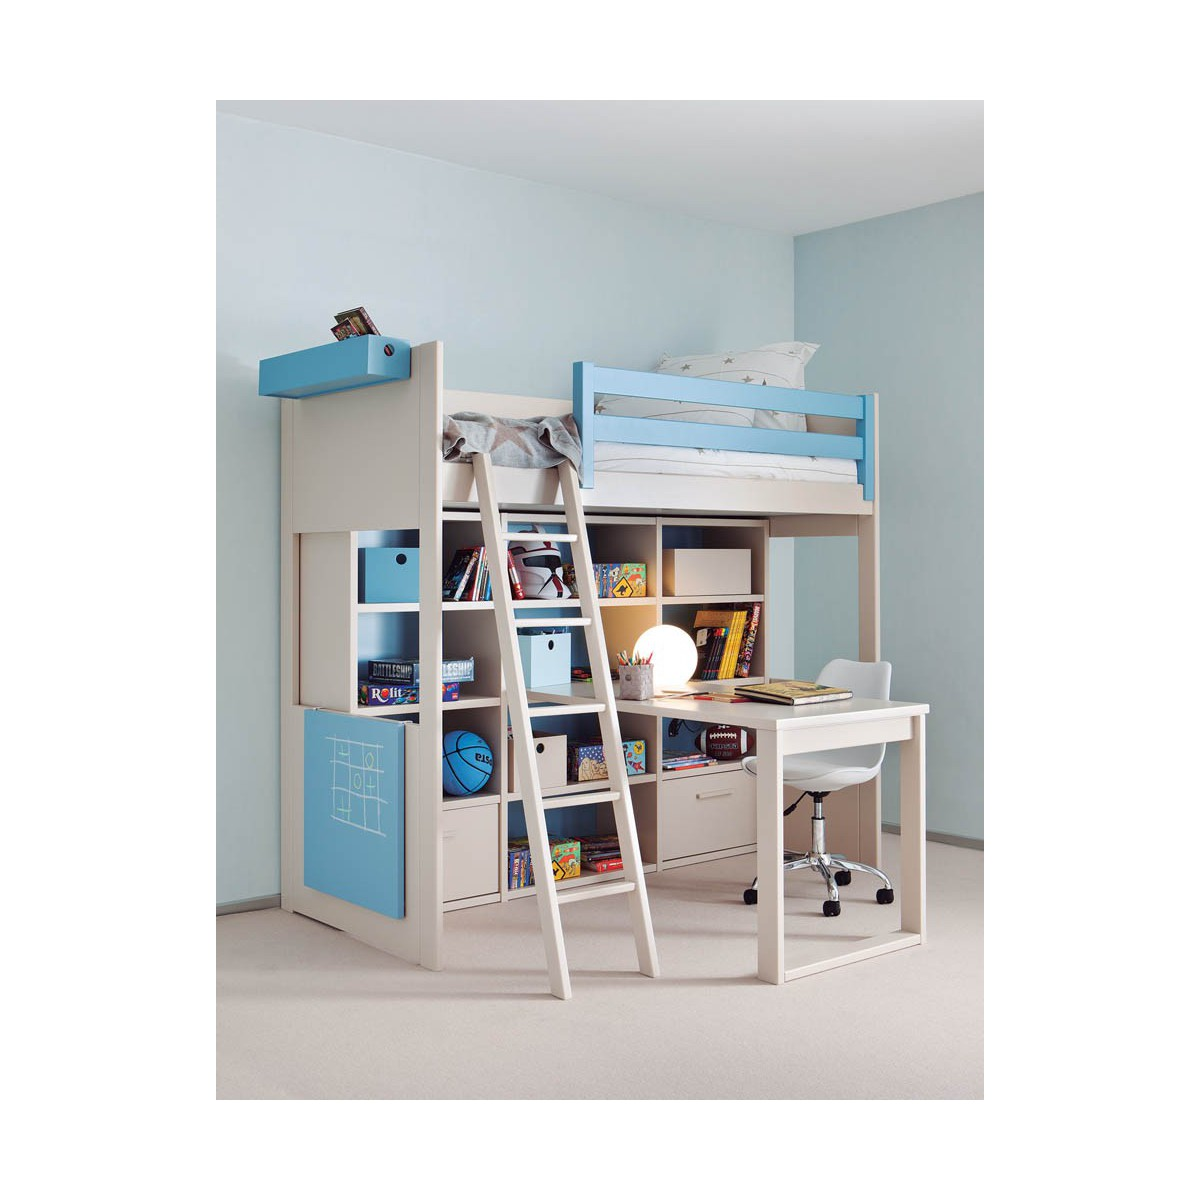 Lit enfant gain de place maison design - Lit armoire gain de place ...